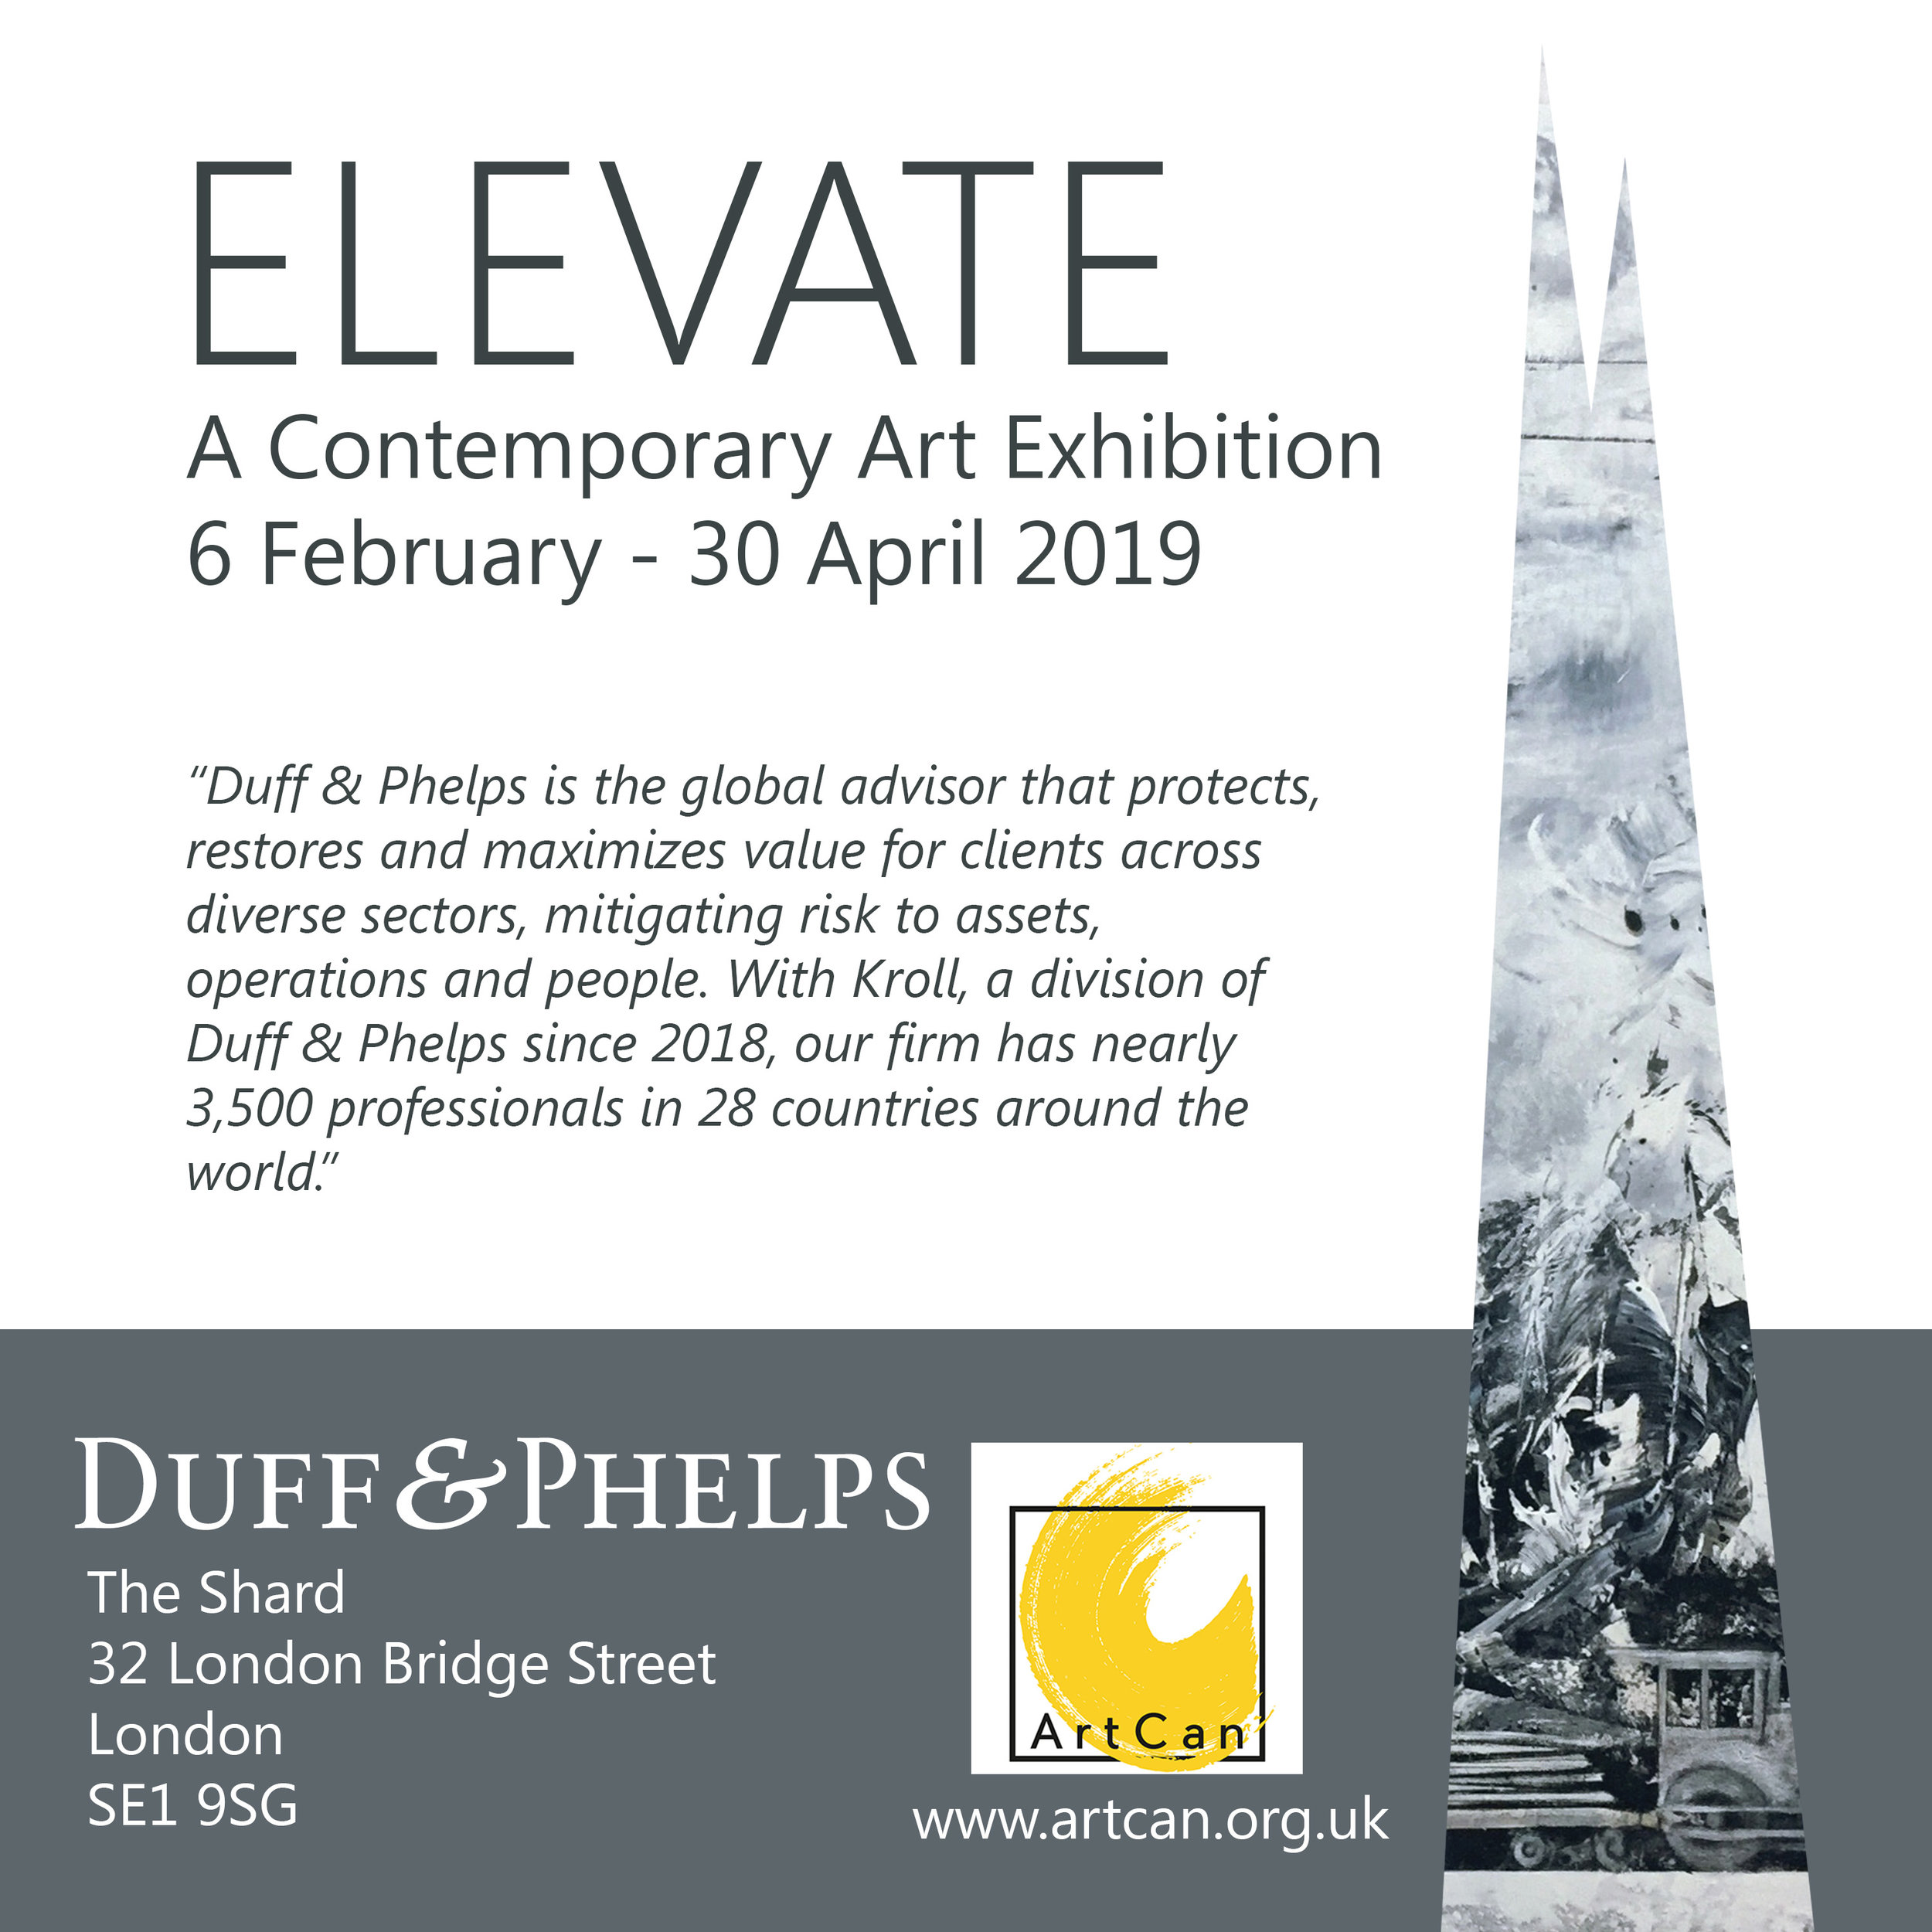 Elevate_ArtCan FLYER_Final 6 Feb 2019.jpg